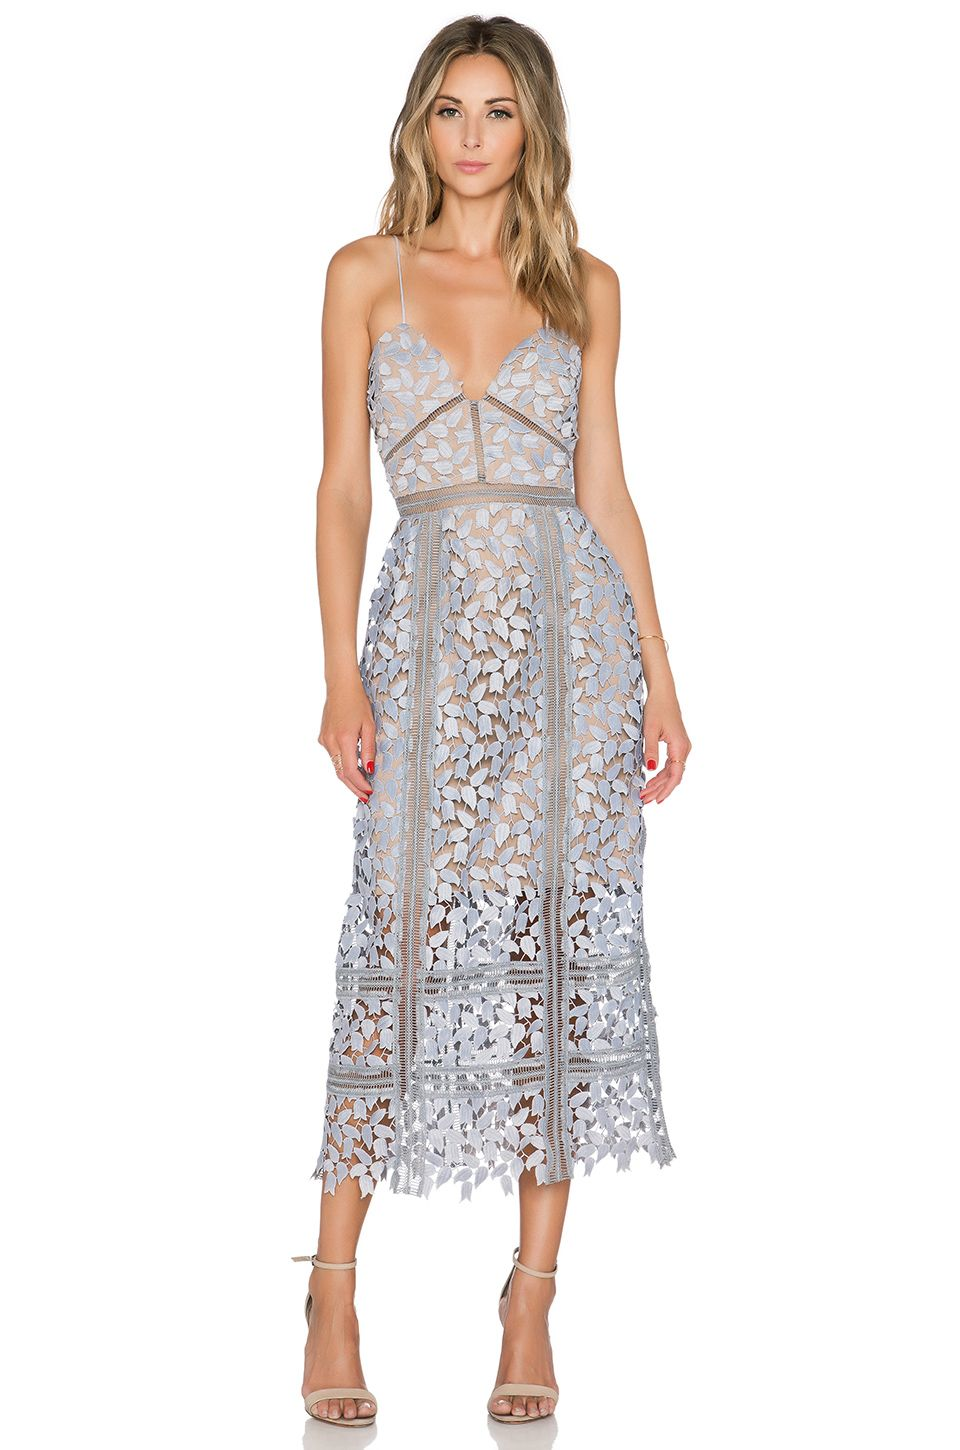 self-portrait Arabella Midi Dress in Smoked Lilac   Nude   Les ... 2a3a8b2648